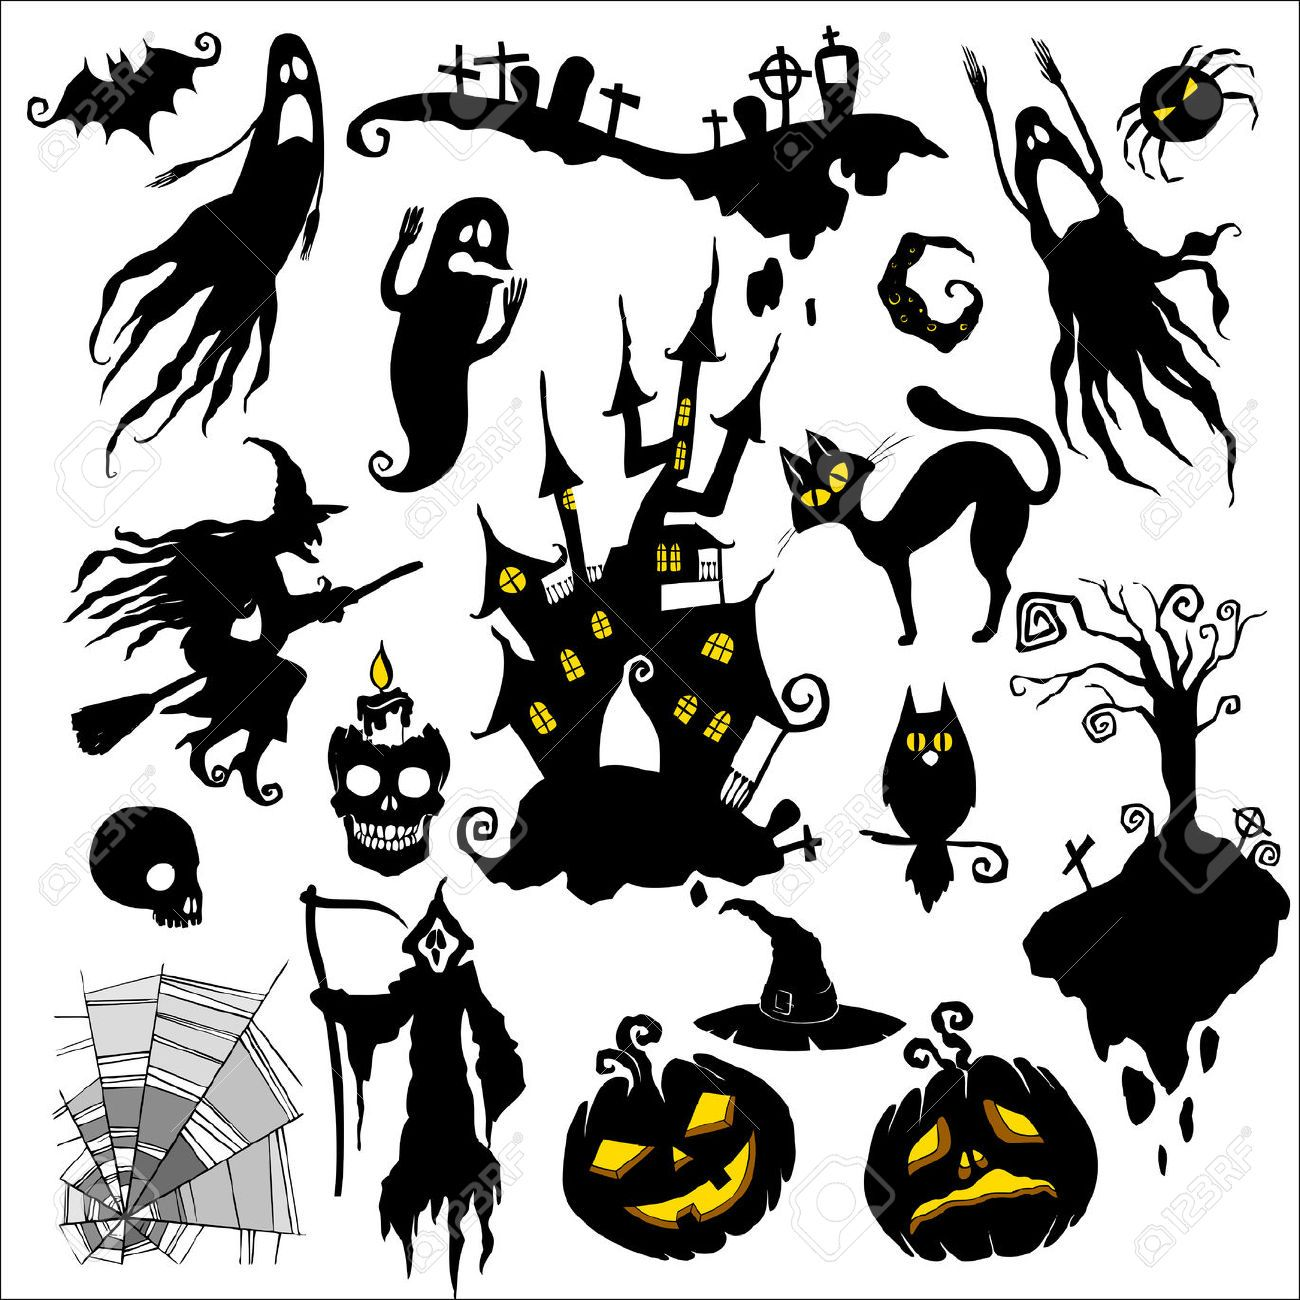 Image result for scary tree silhouette halloween